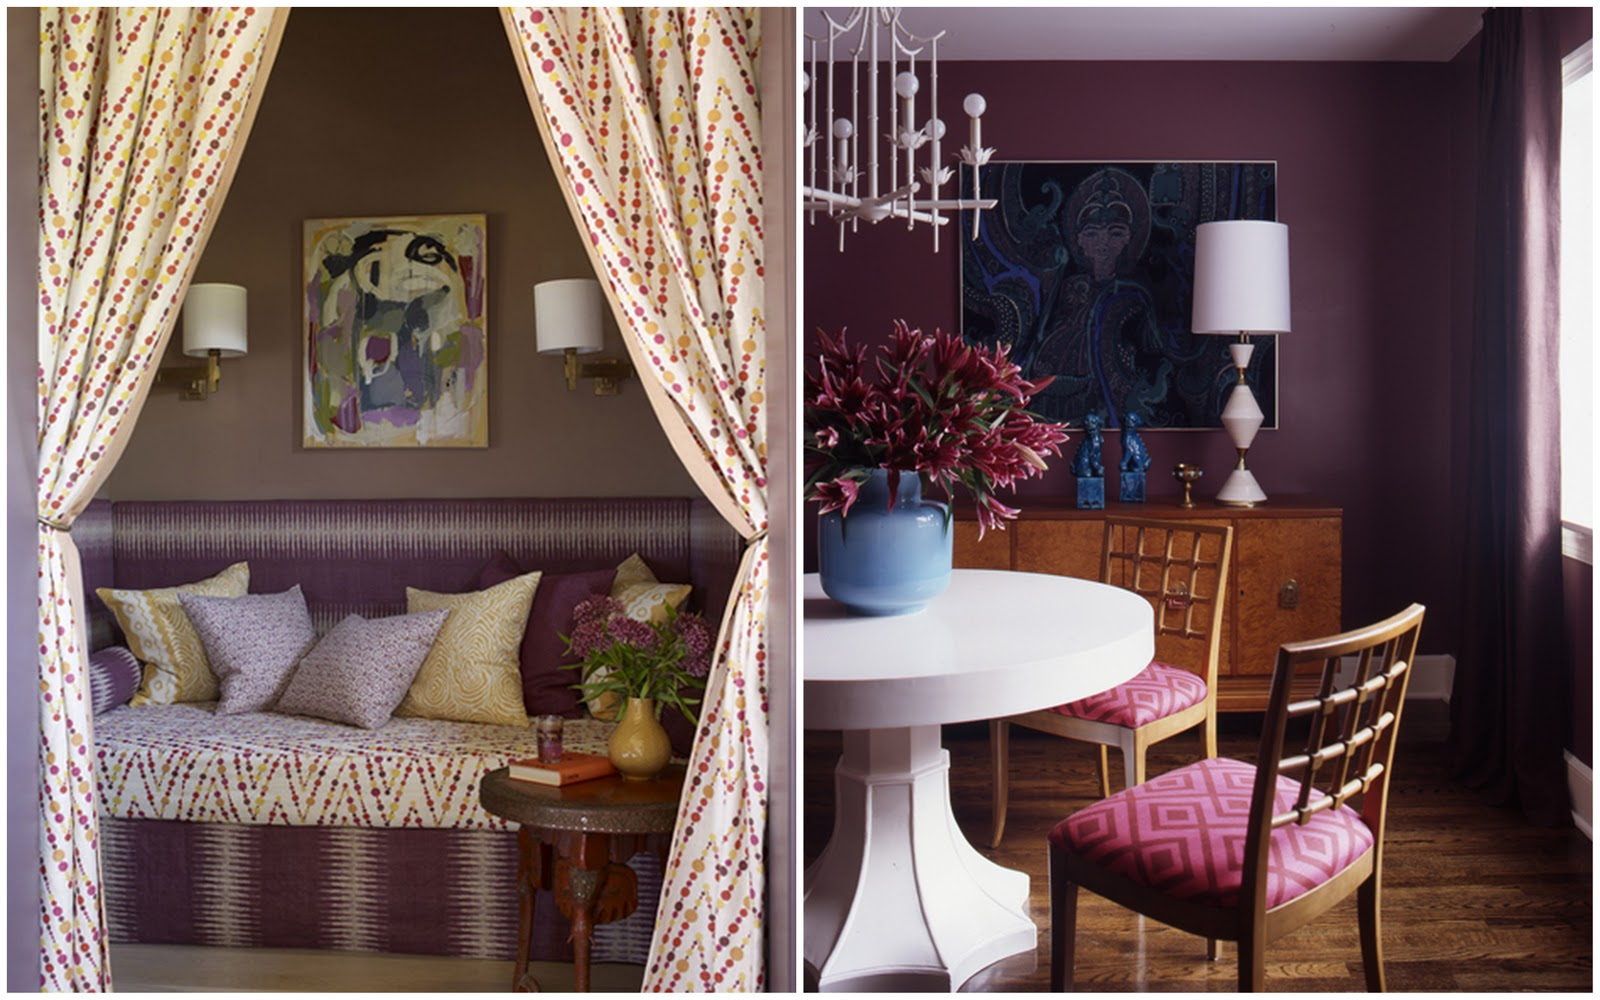 Angie Hranowsky q&a with interior designer angie hranowsky - look linger love look